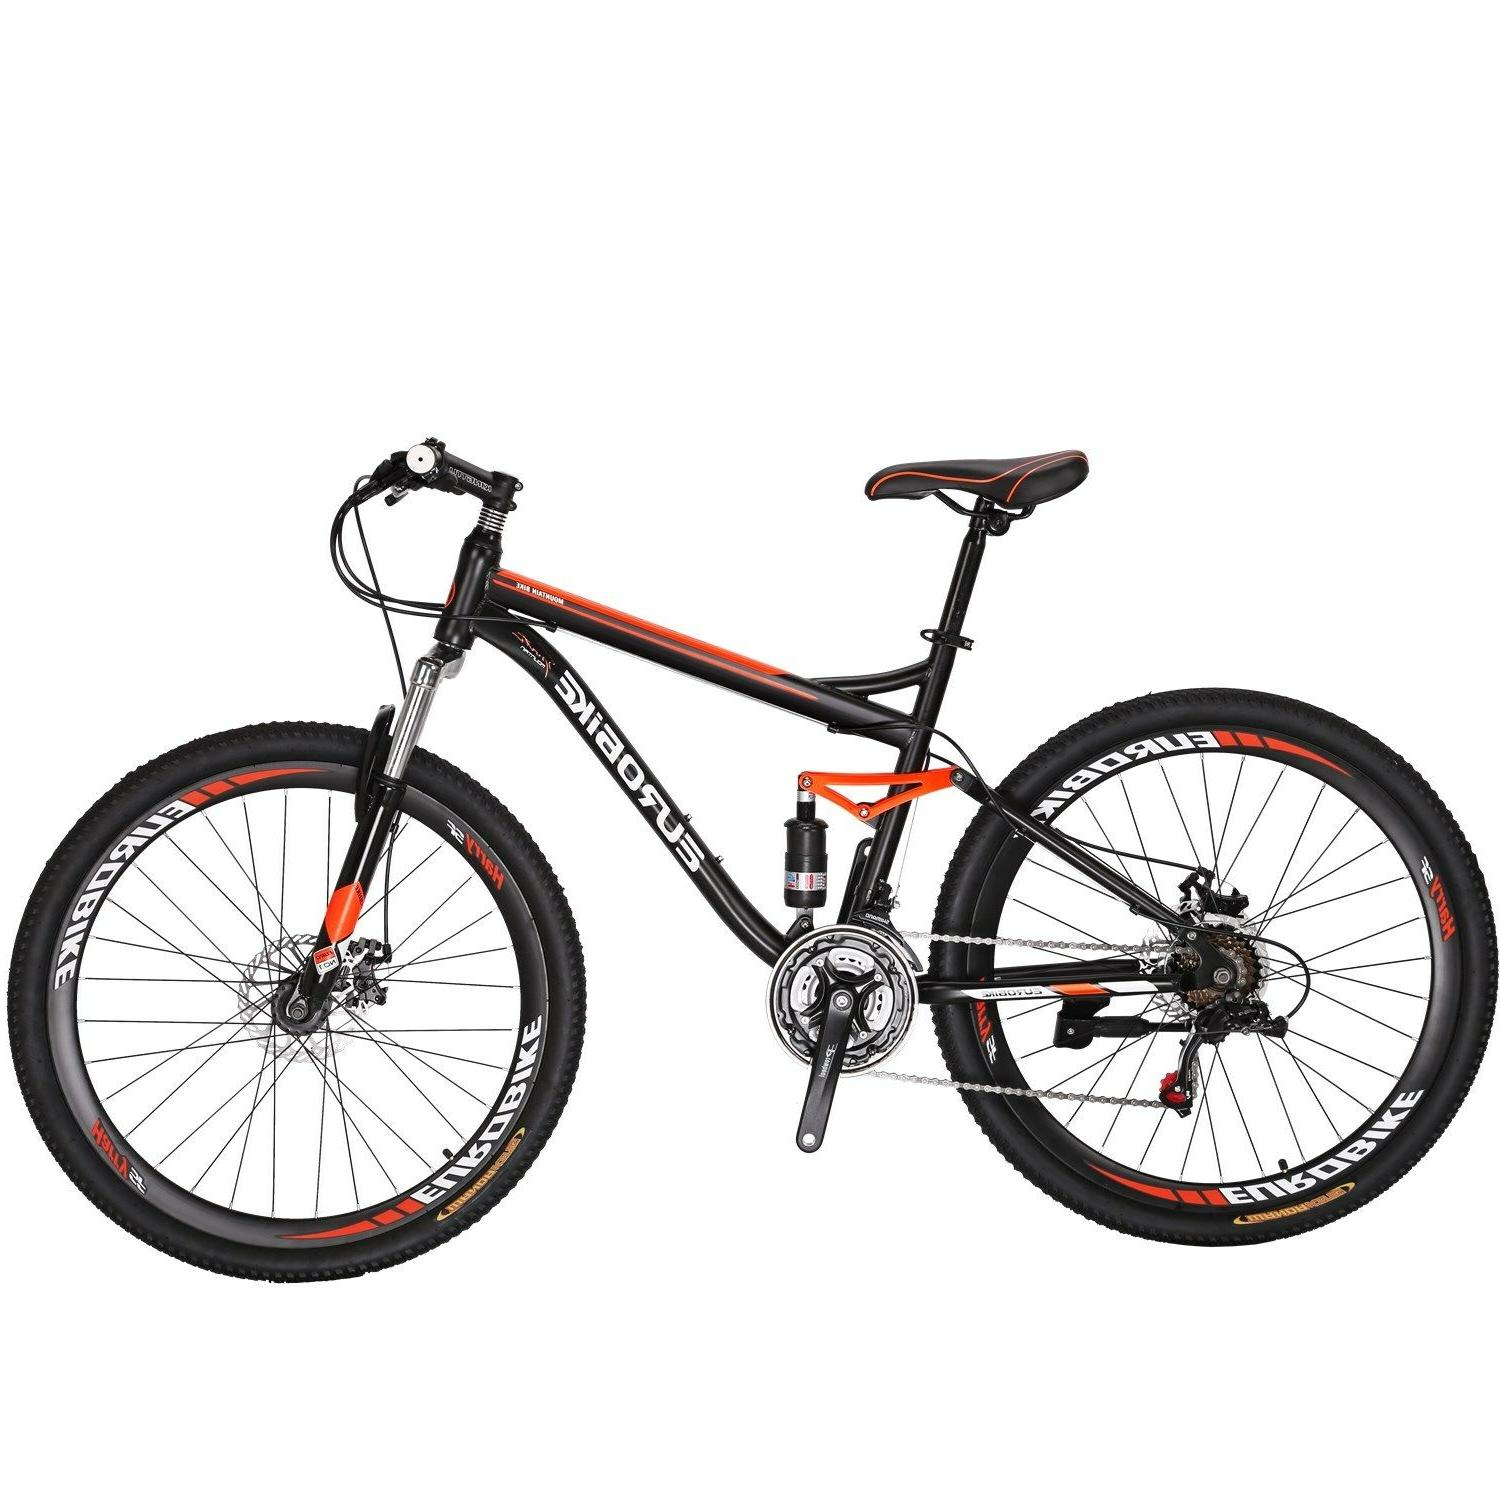 "27.5"" Full Bike Shimano Speed Men's Bikes"